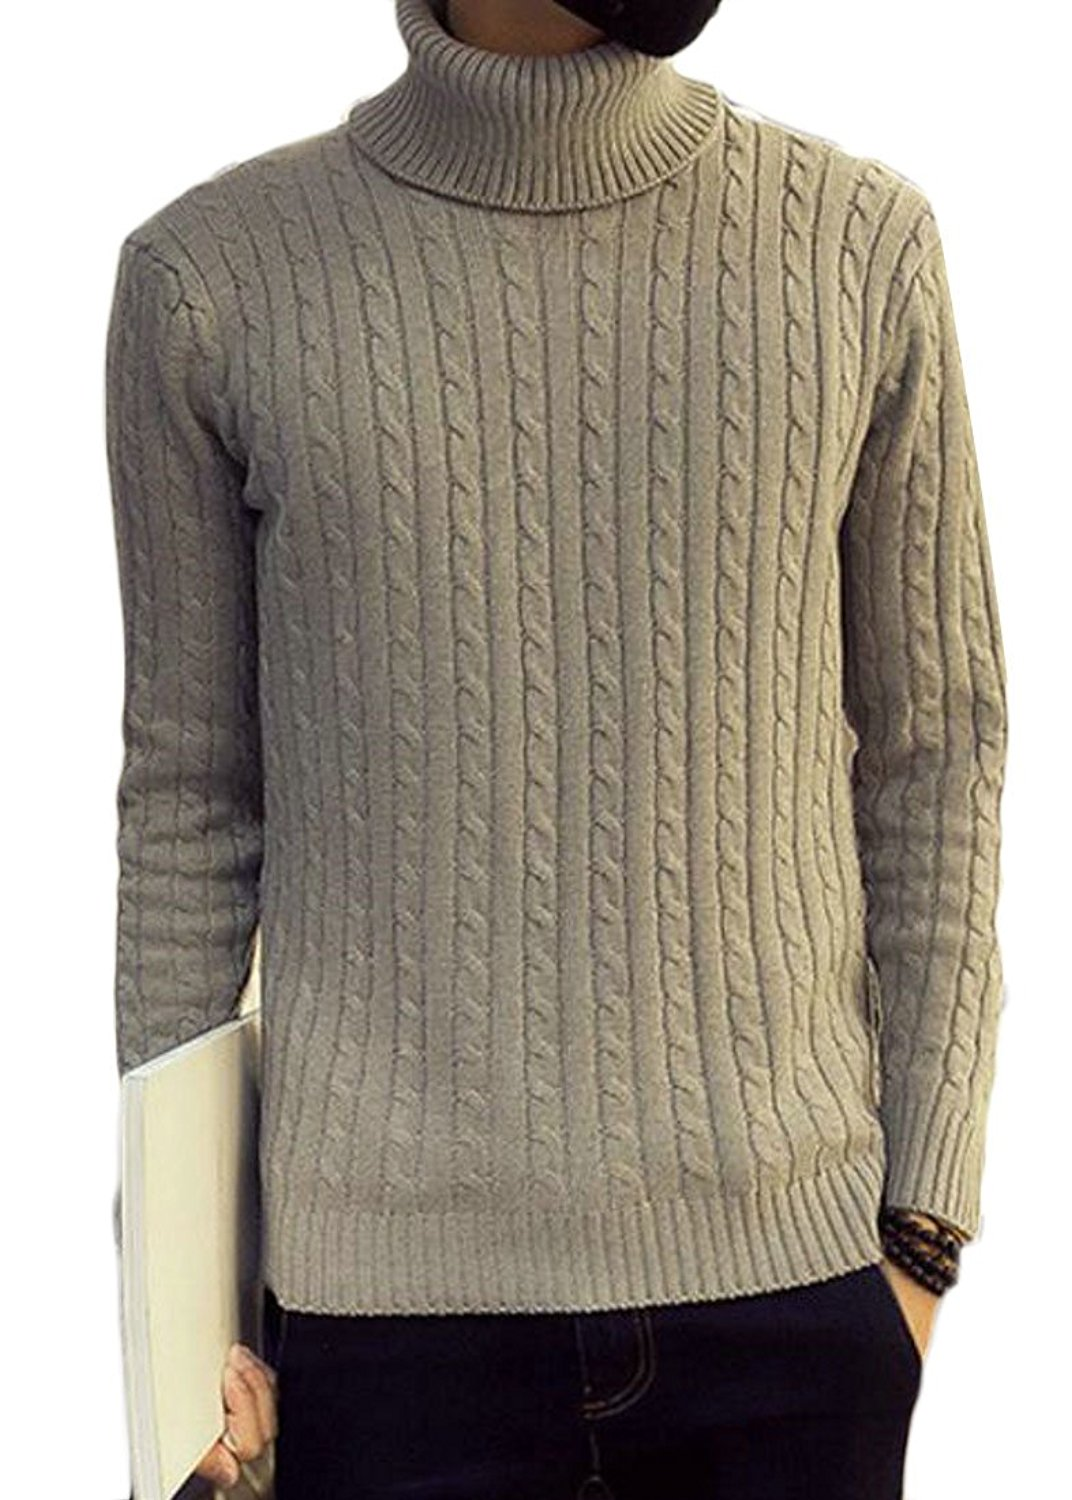 WSPLYSPJY Mens Turtleneck Sweater Loose Twisted Knitted Pullover Sweaters